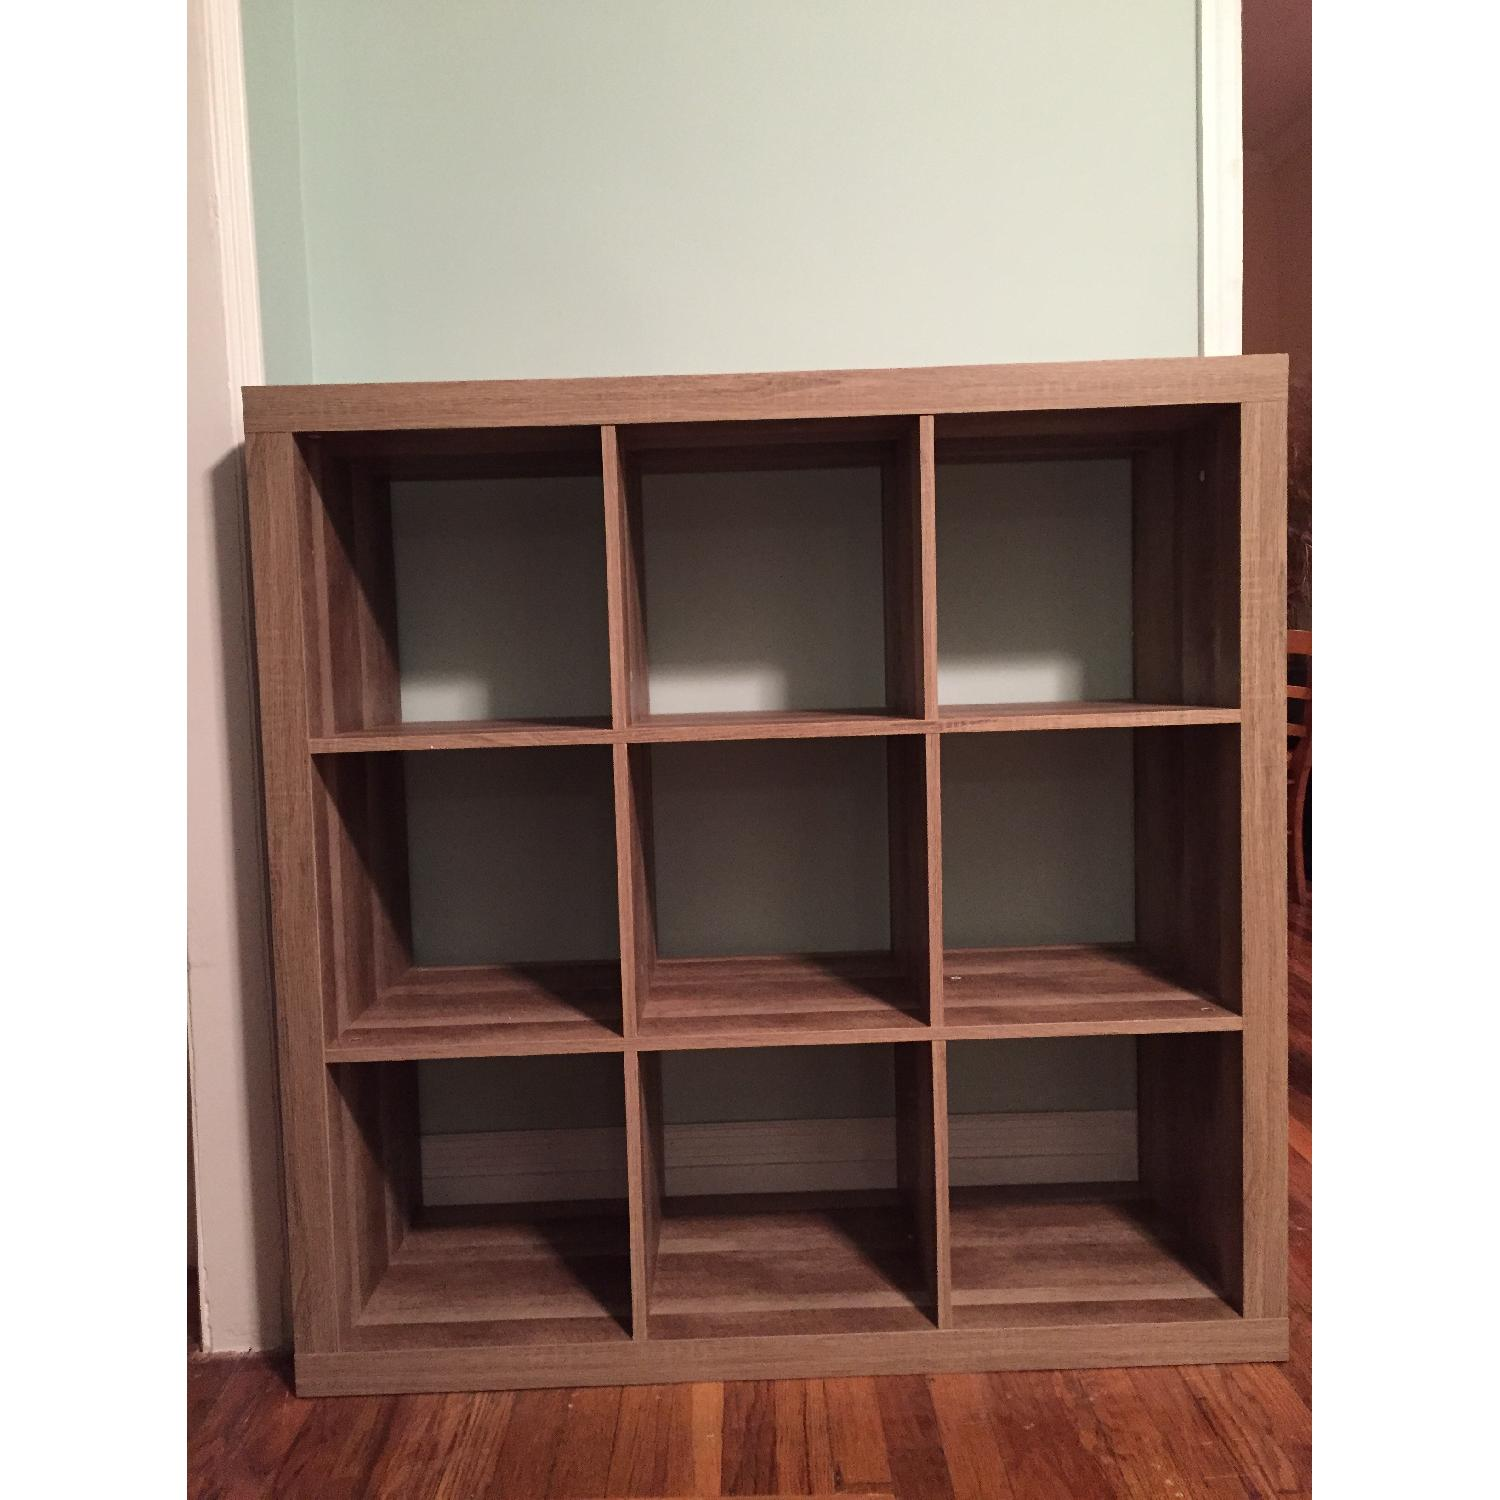 Better Homes and Garden Cube Storage Unit - image-1